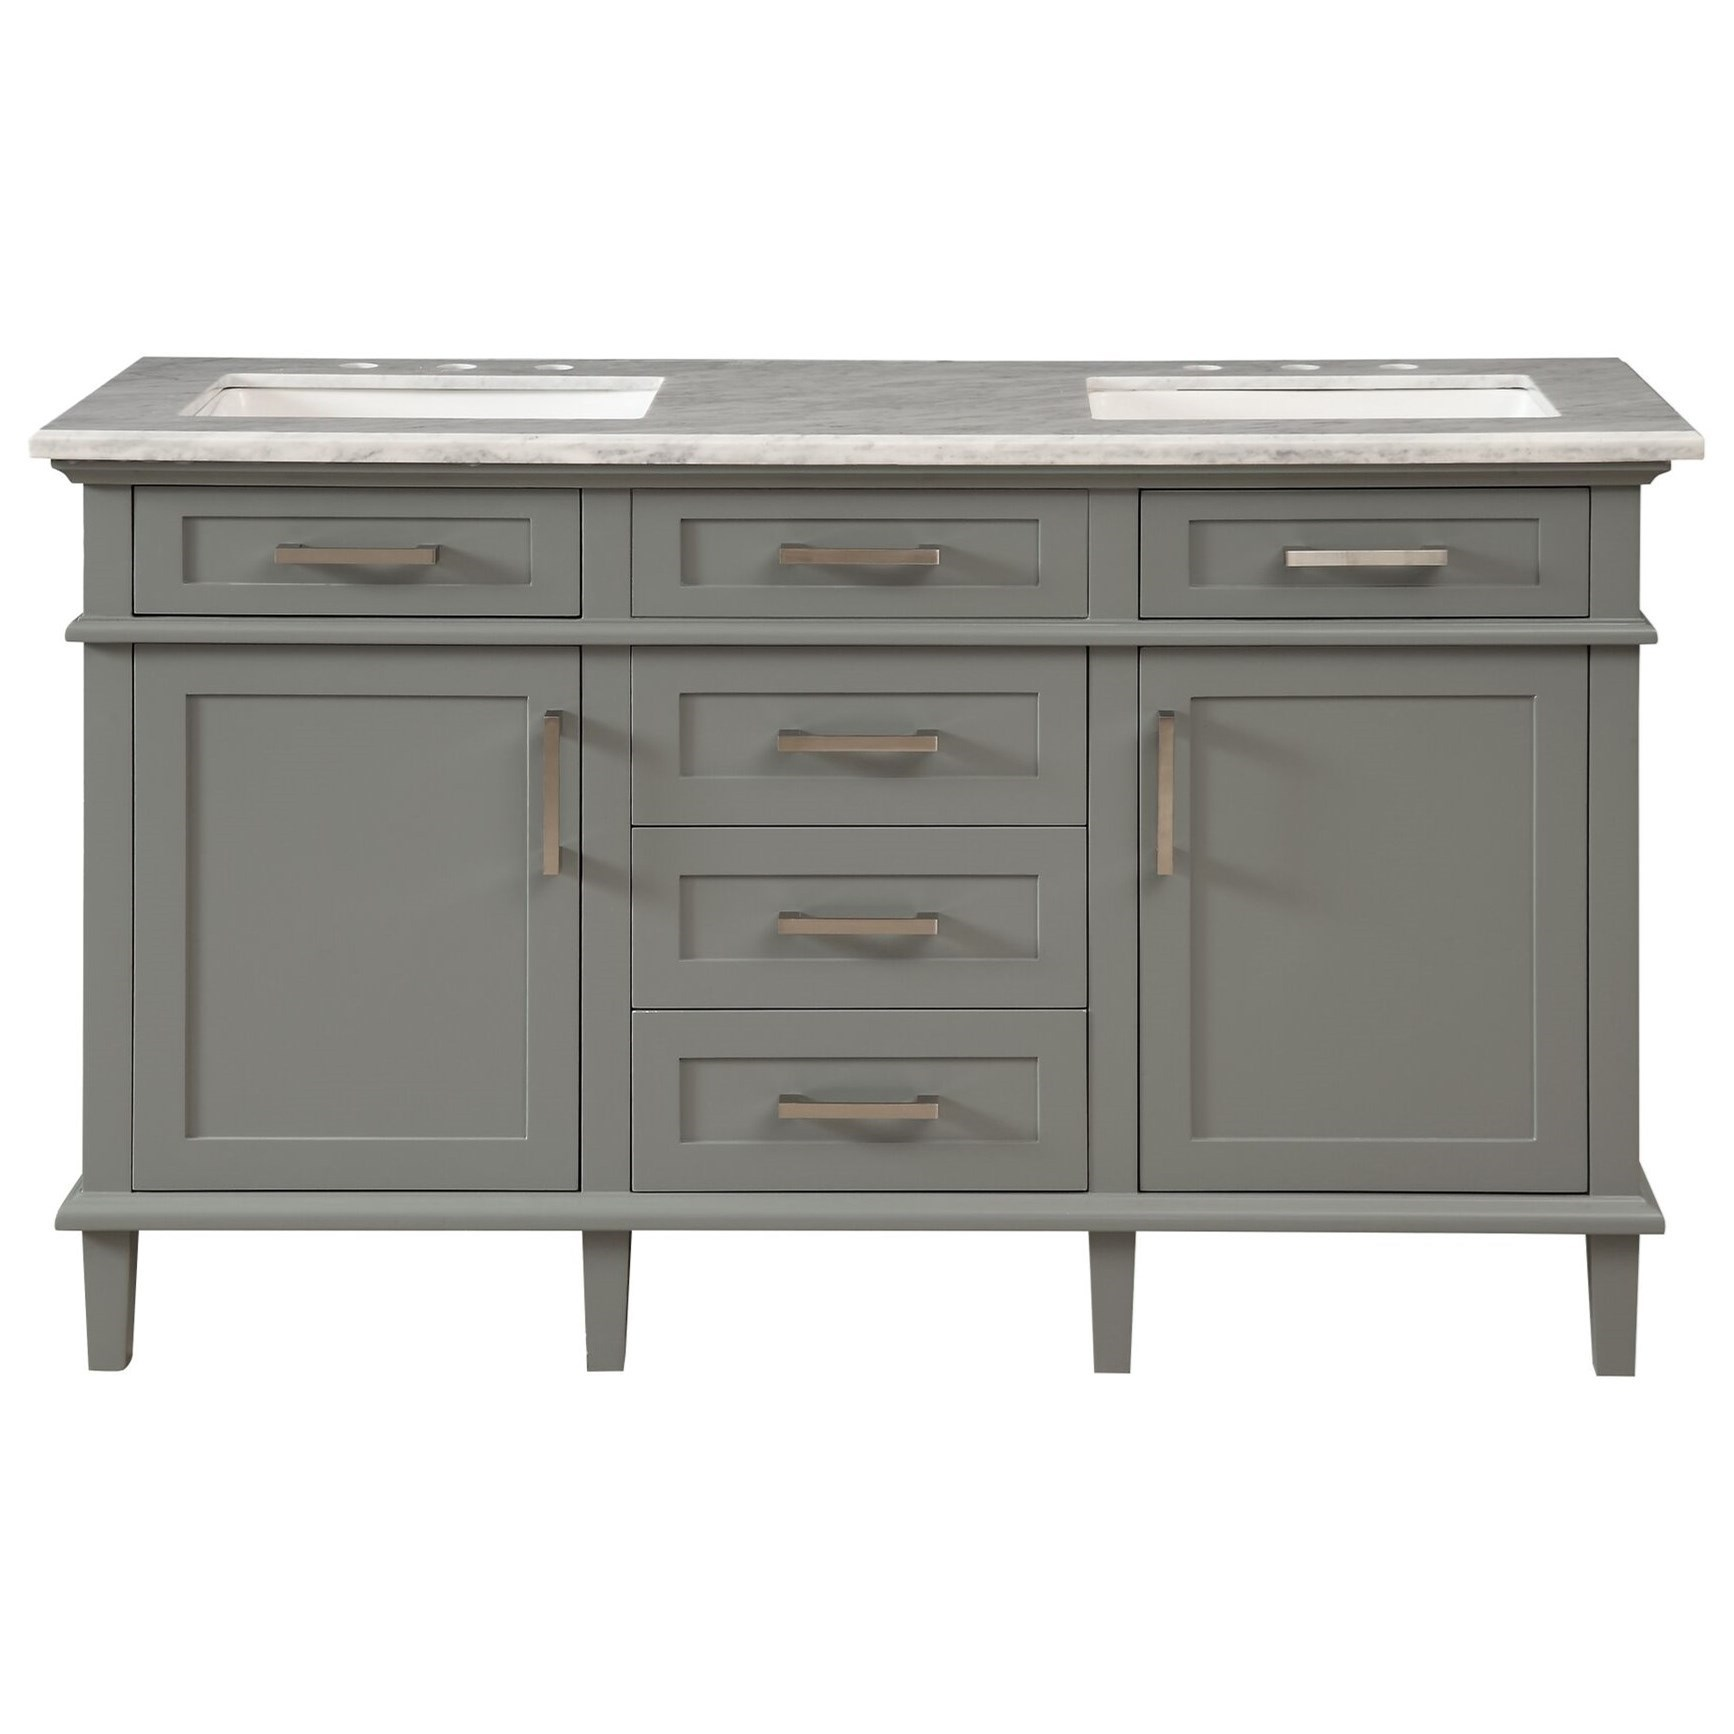 2-Door, 5-Drawer Double Vanity Sink